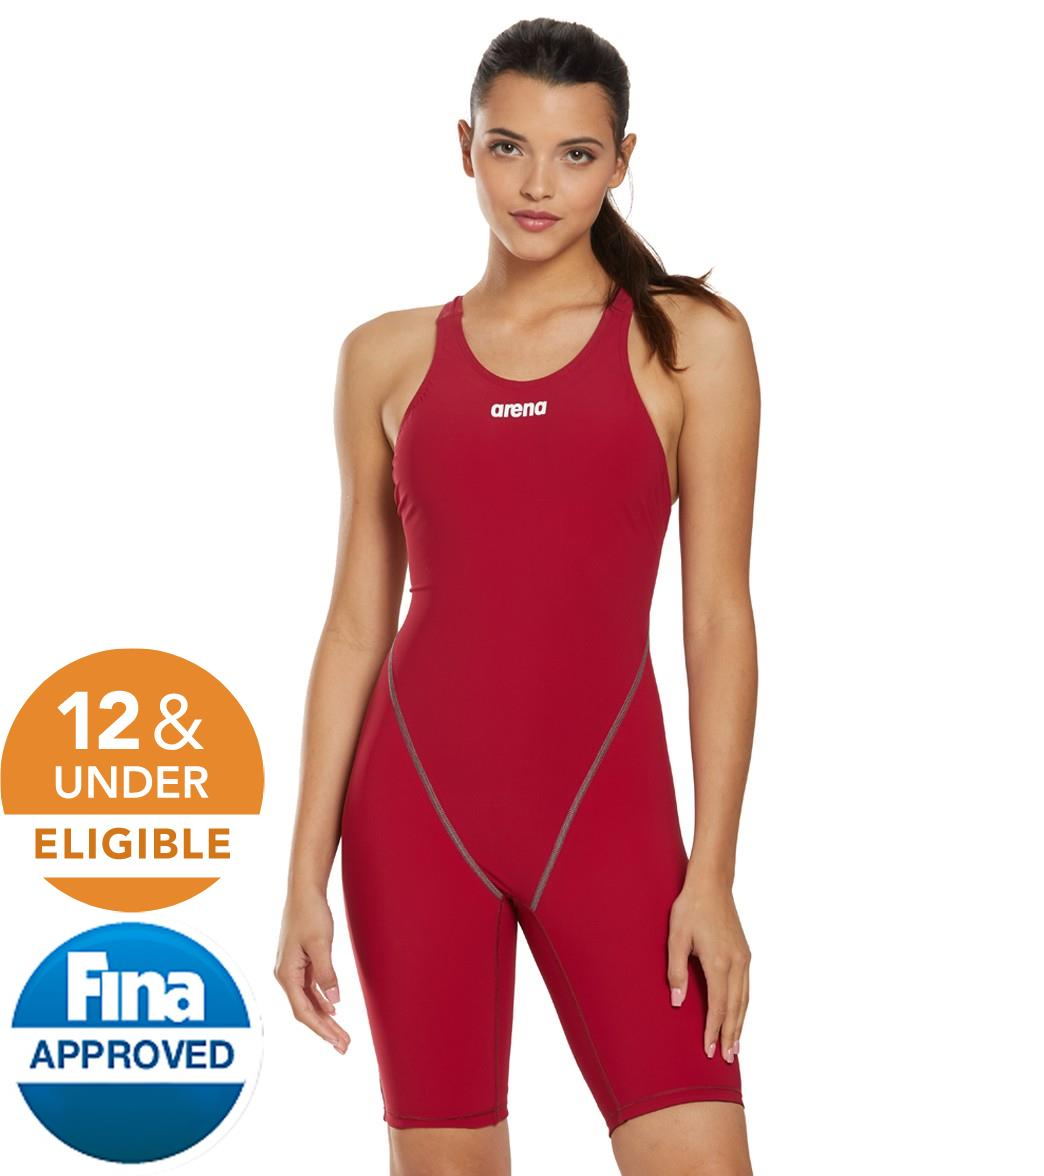 Arena ST 2.0 women's budget tech suit